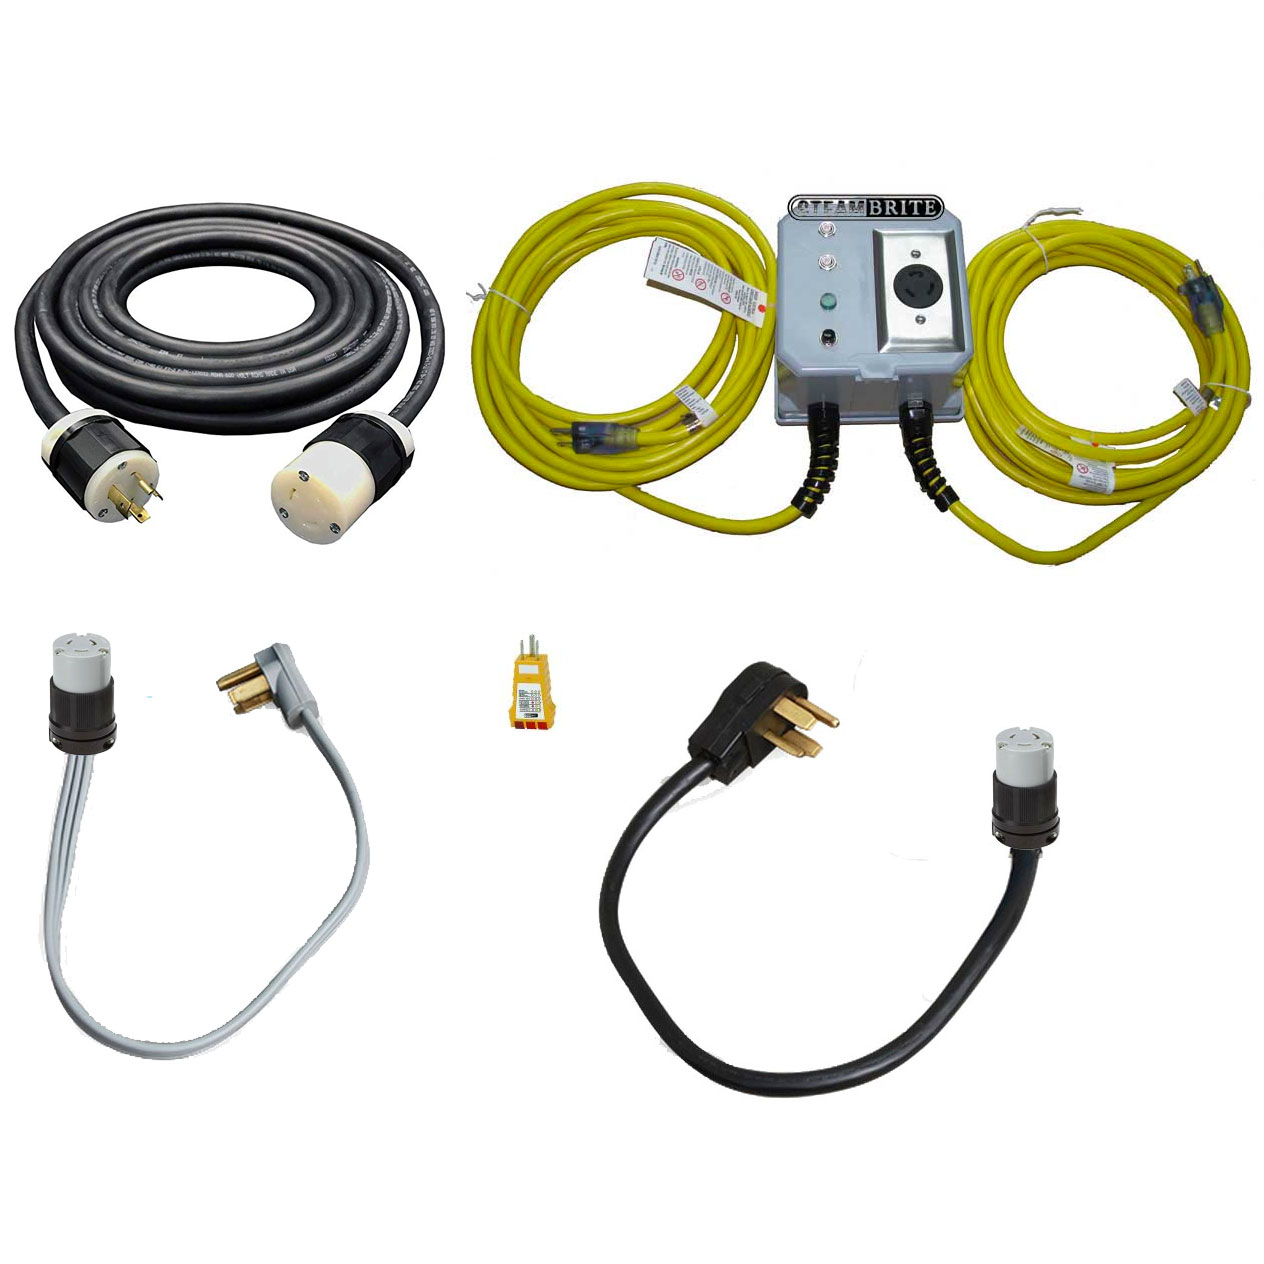 SteamBrite Husqvarna L6-20 Basic Power Supply Kit 20191125 Bundle PG280 PG450 PG530 DM340